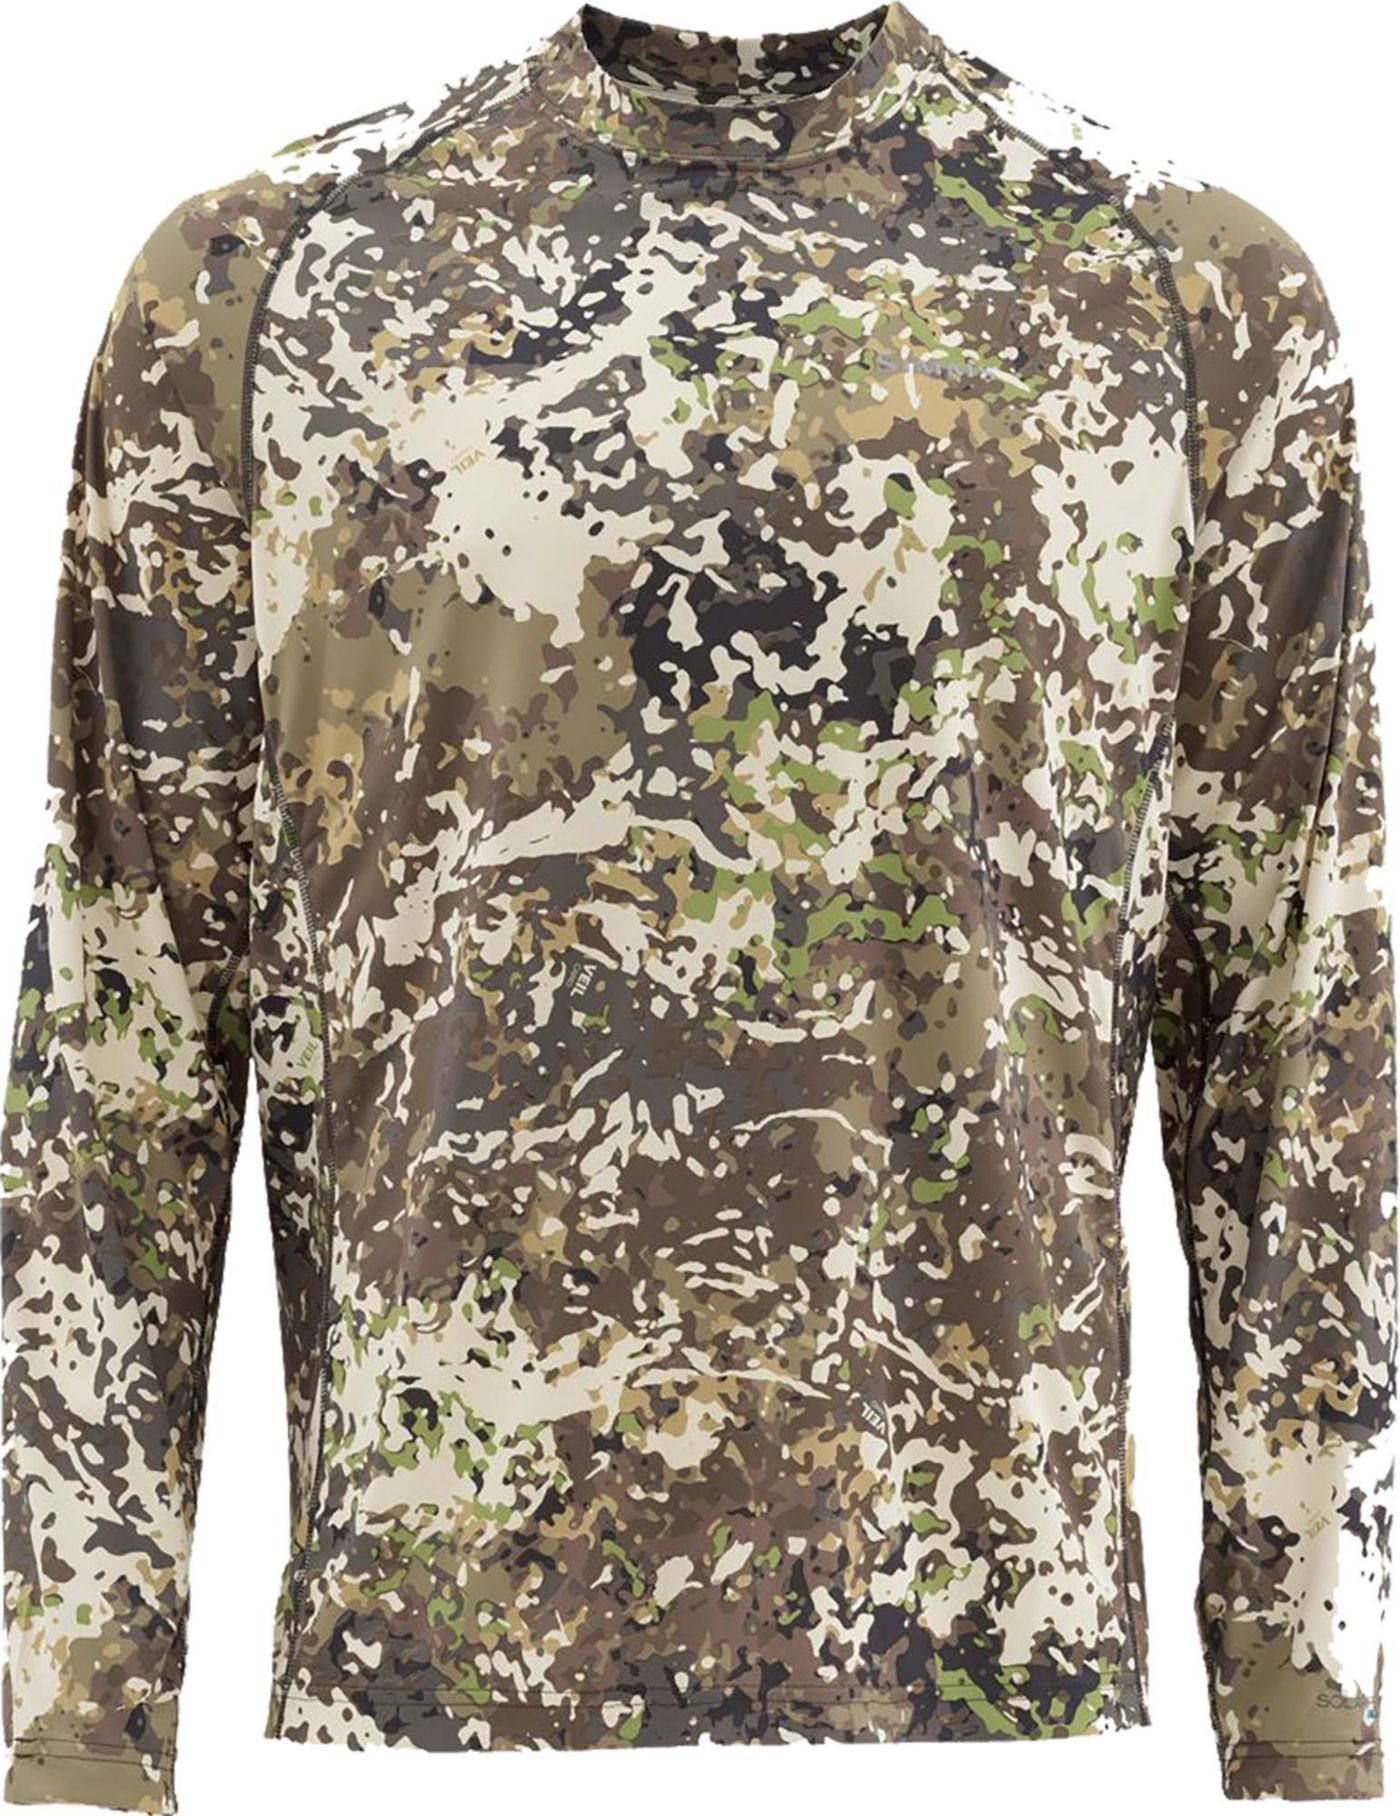 Simms Men's Solarflex Print Long Sleeve Fishing Shirt